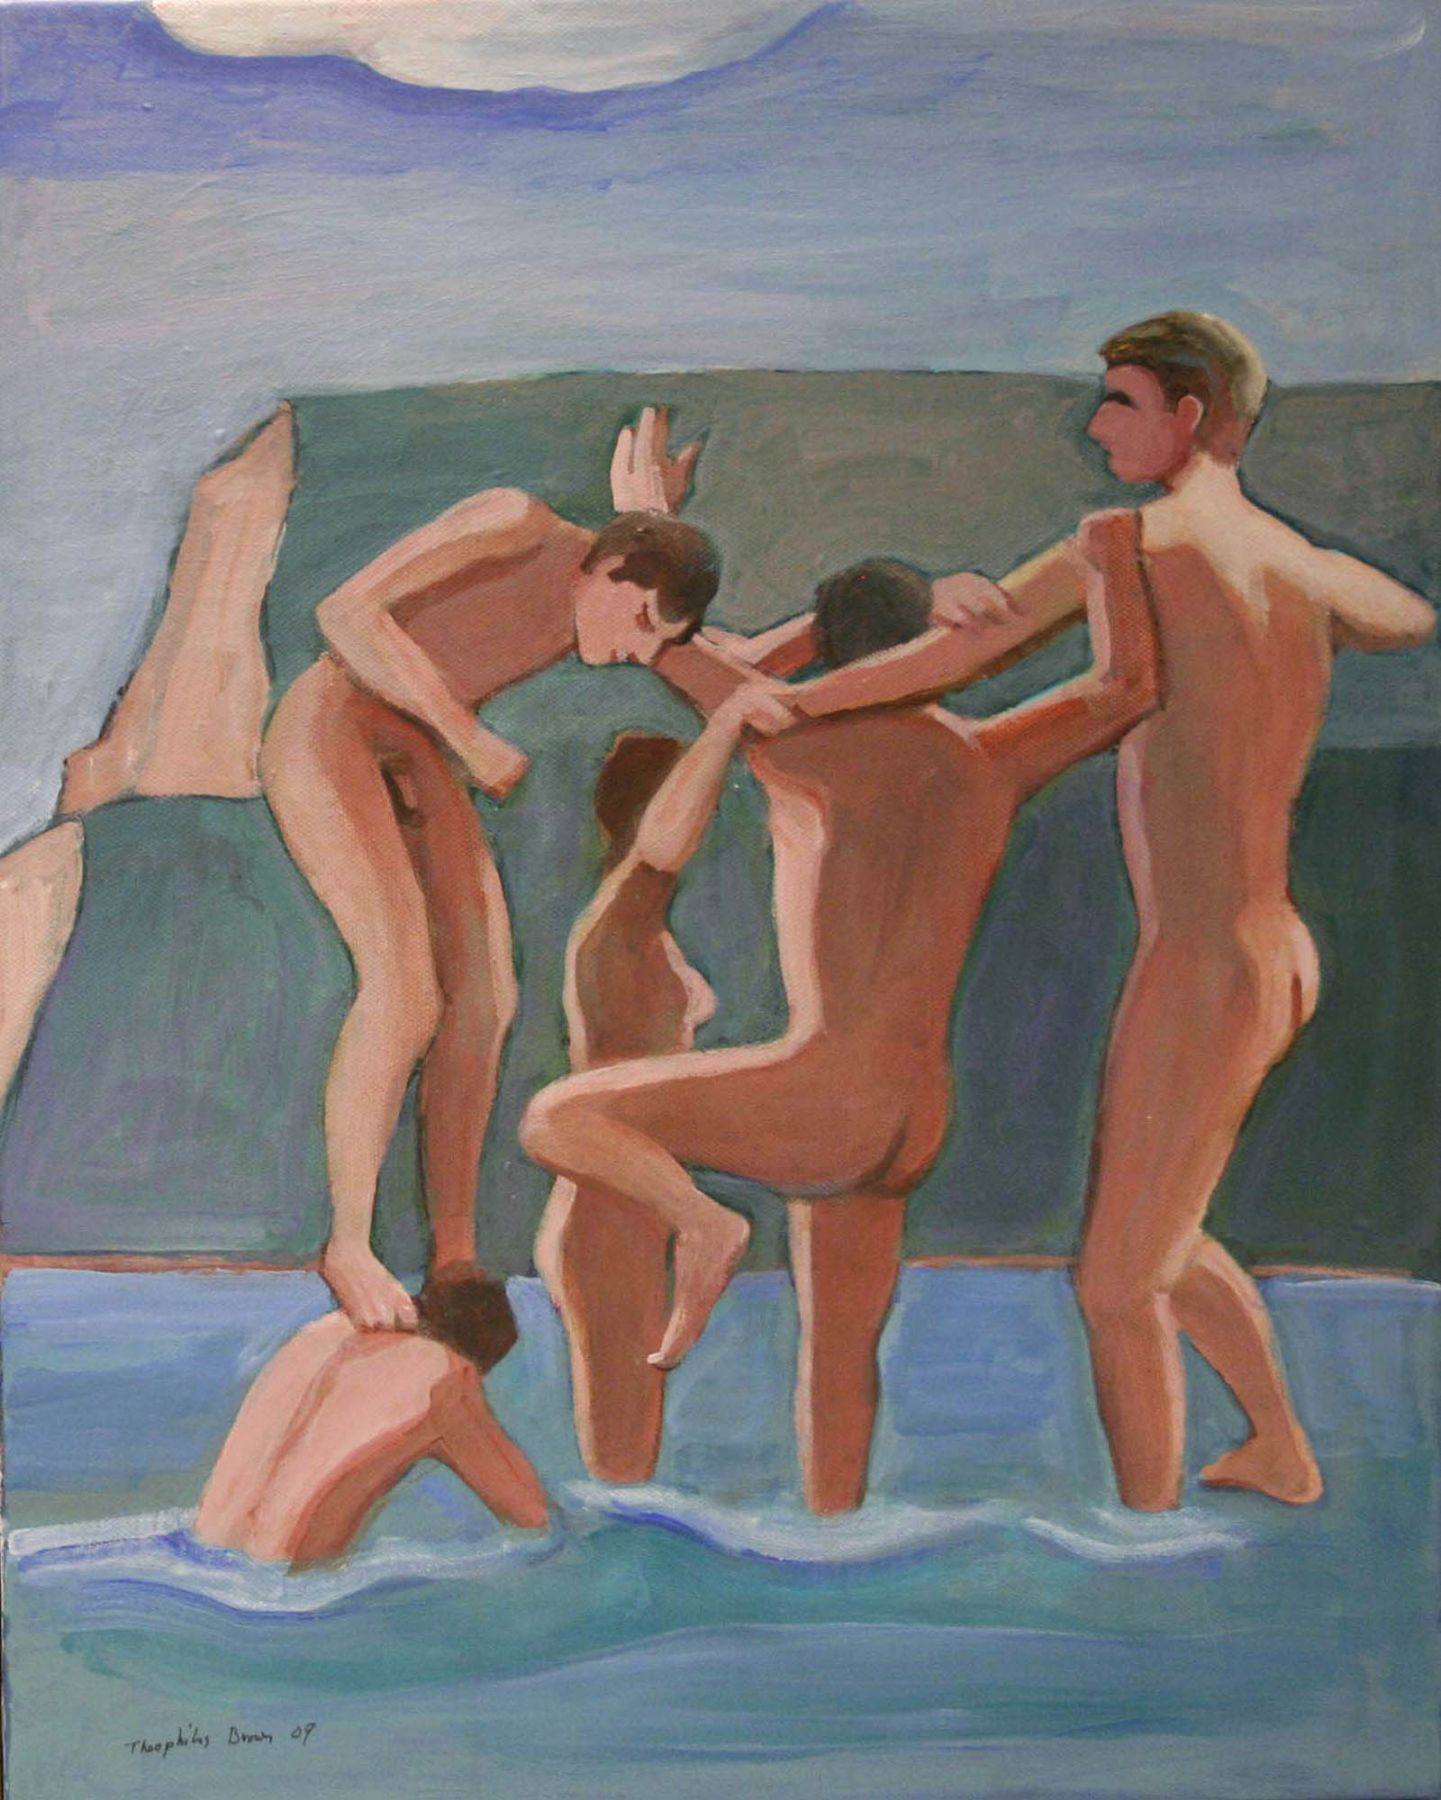 William Theophilus Brown, Untitled (Five Nudes), 2009